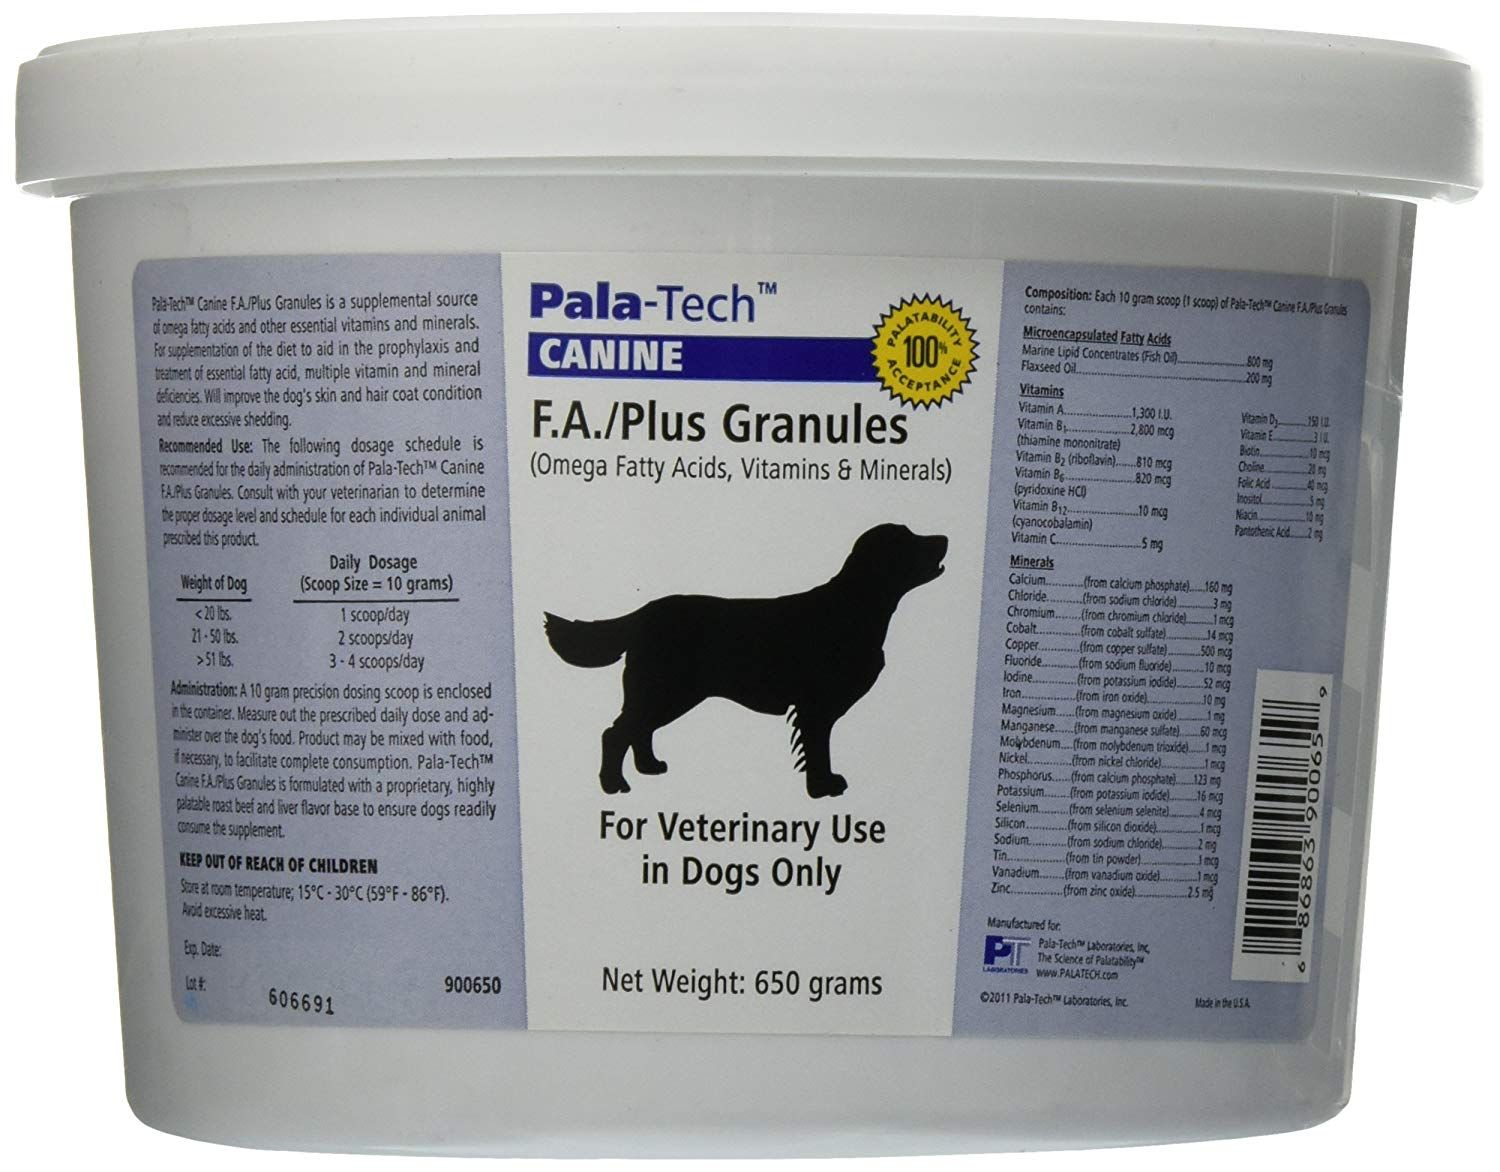 Pala Tech Canine Fa Plus Granules 650g Very Nice Of Your Presence To Drop By To See The Photo This Is Our Affiliate Link Dog Supplies Online Pet Supplements Dog Supplies